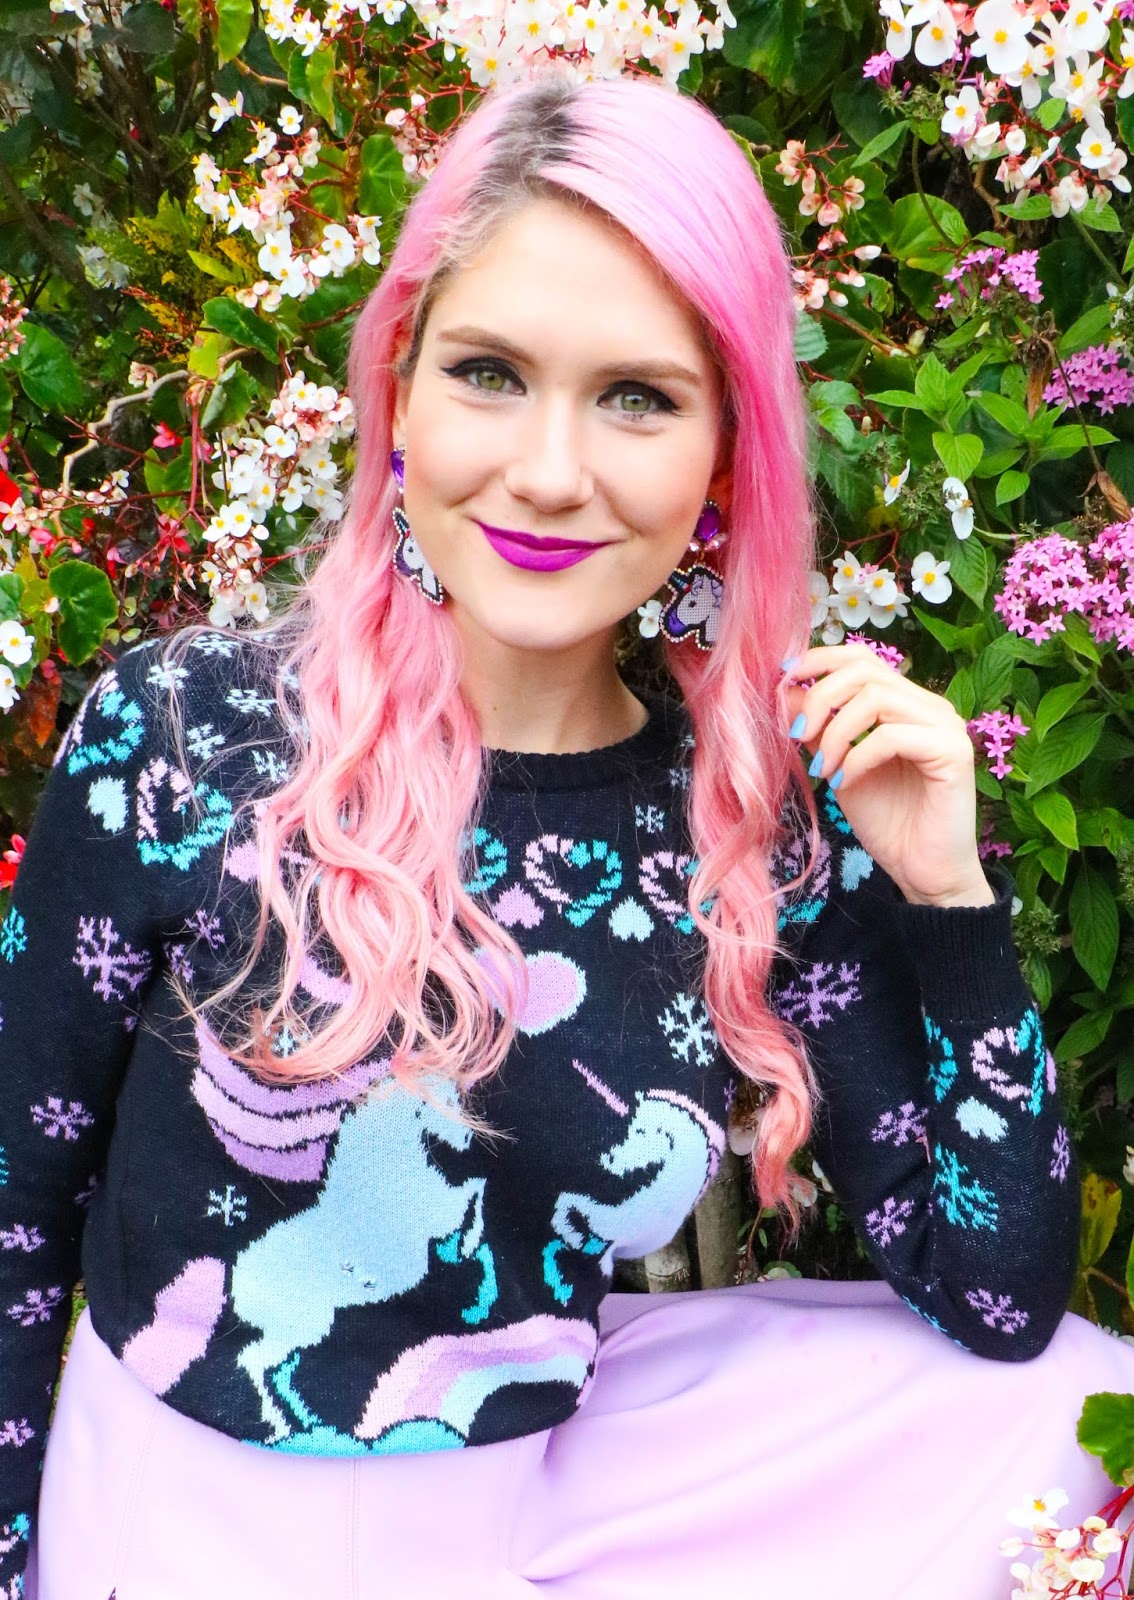 Cute Unicorn Sweater Outfit